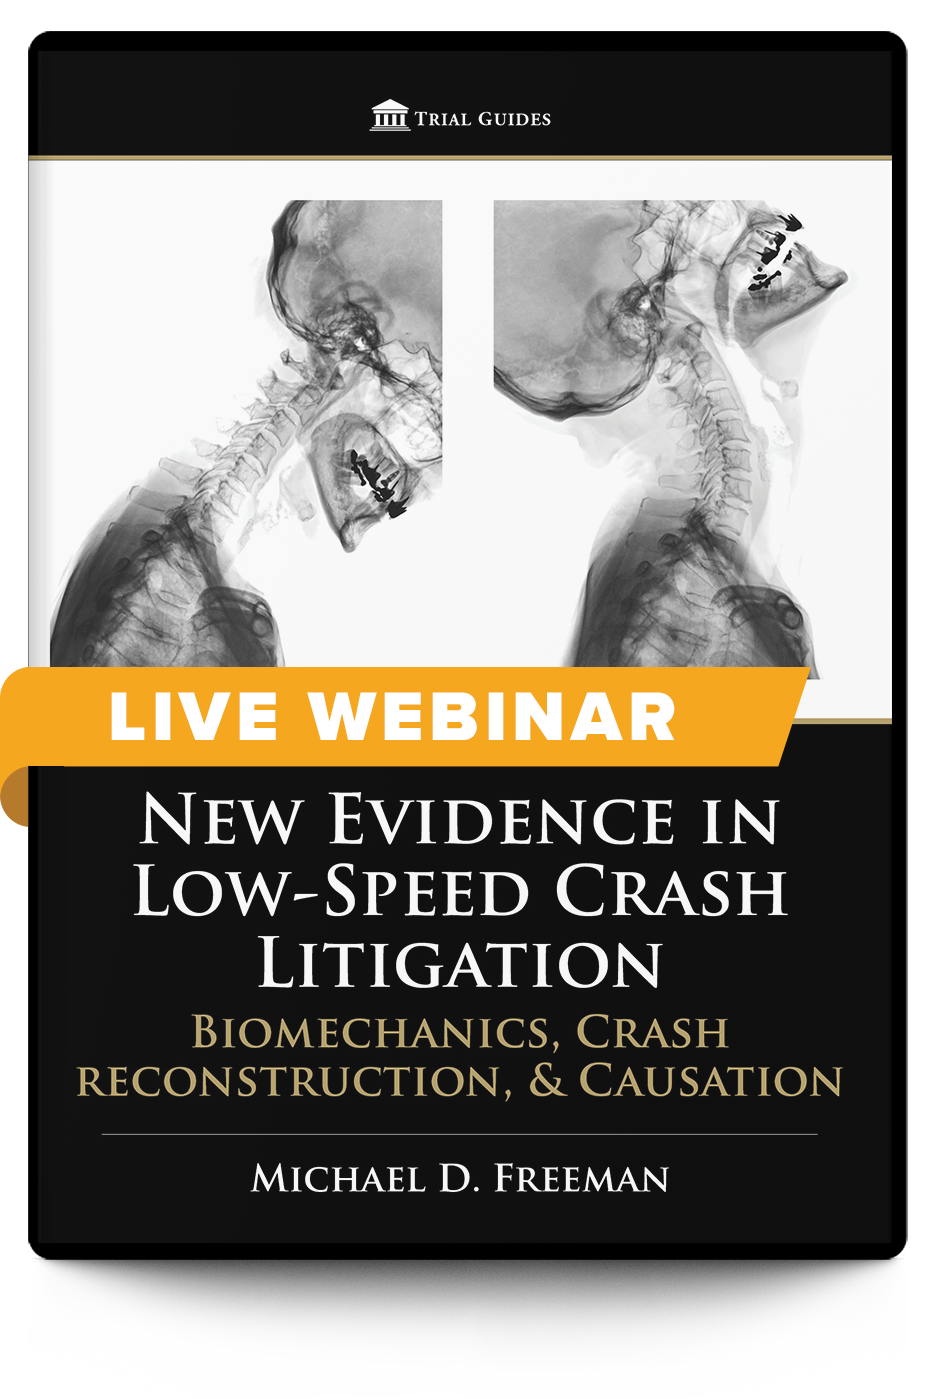 New Evidence in Low-Speed Crash Litigation: Biomechanics, Crash reconstruction, and Causation - Live Webinar